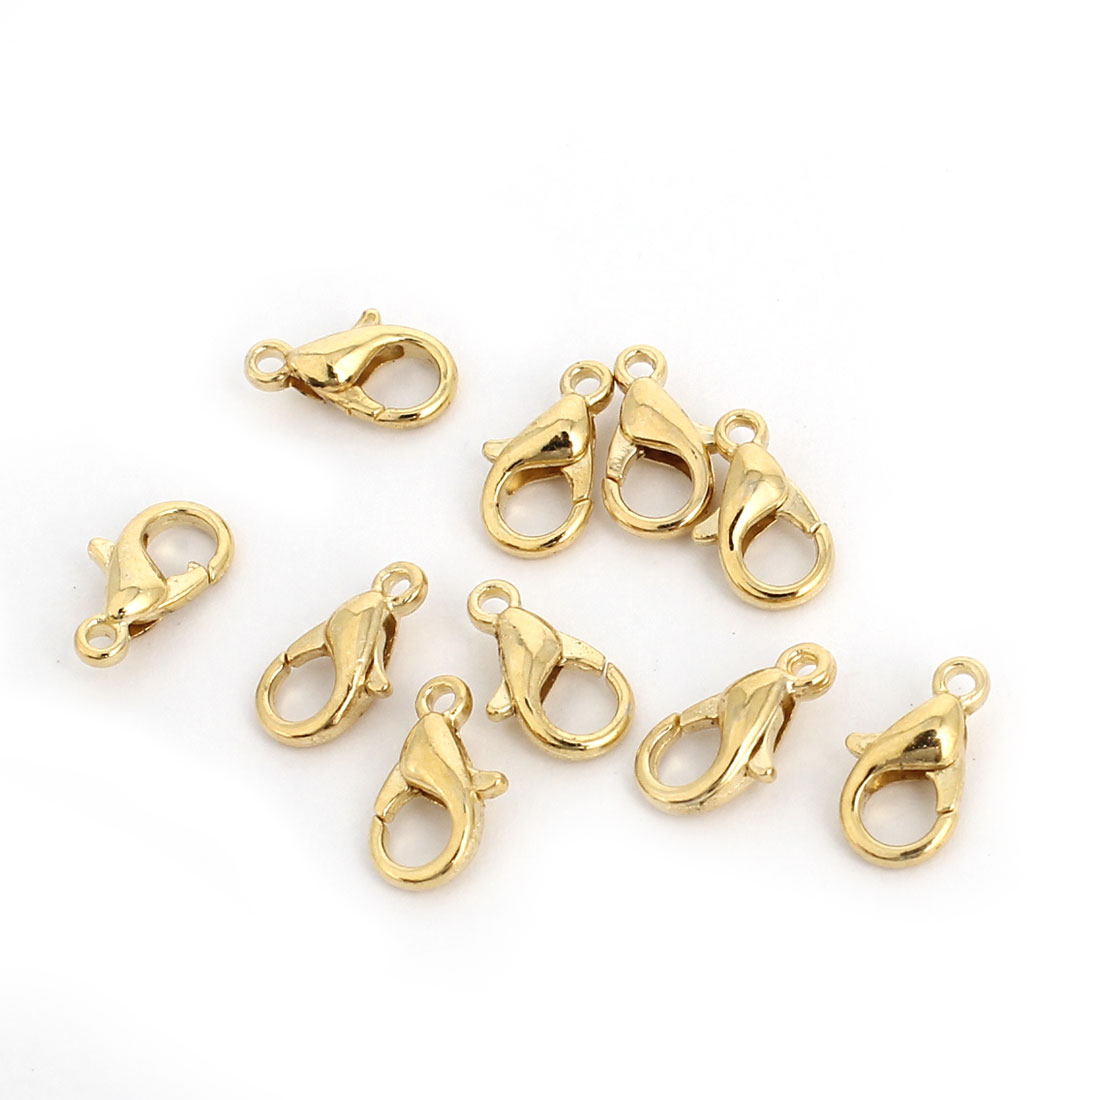 Necklace Bracelet Findings 10mm Gold Tone Lobster Claw Clasps 10 Pcs